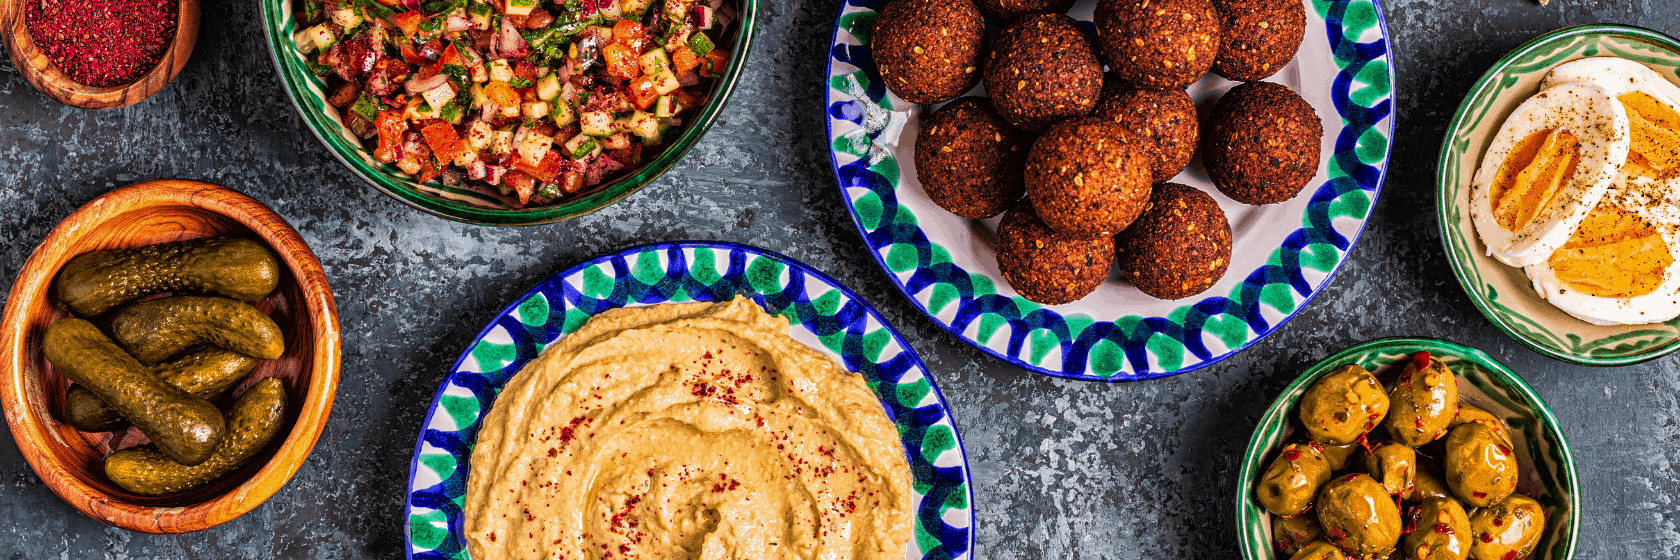 Plates of healthy Arabic foods you need to try